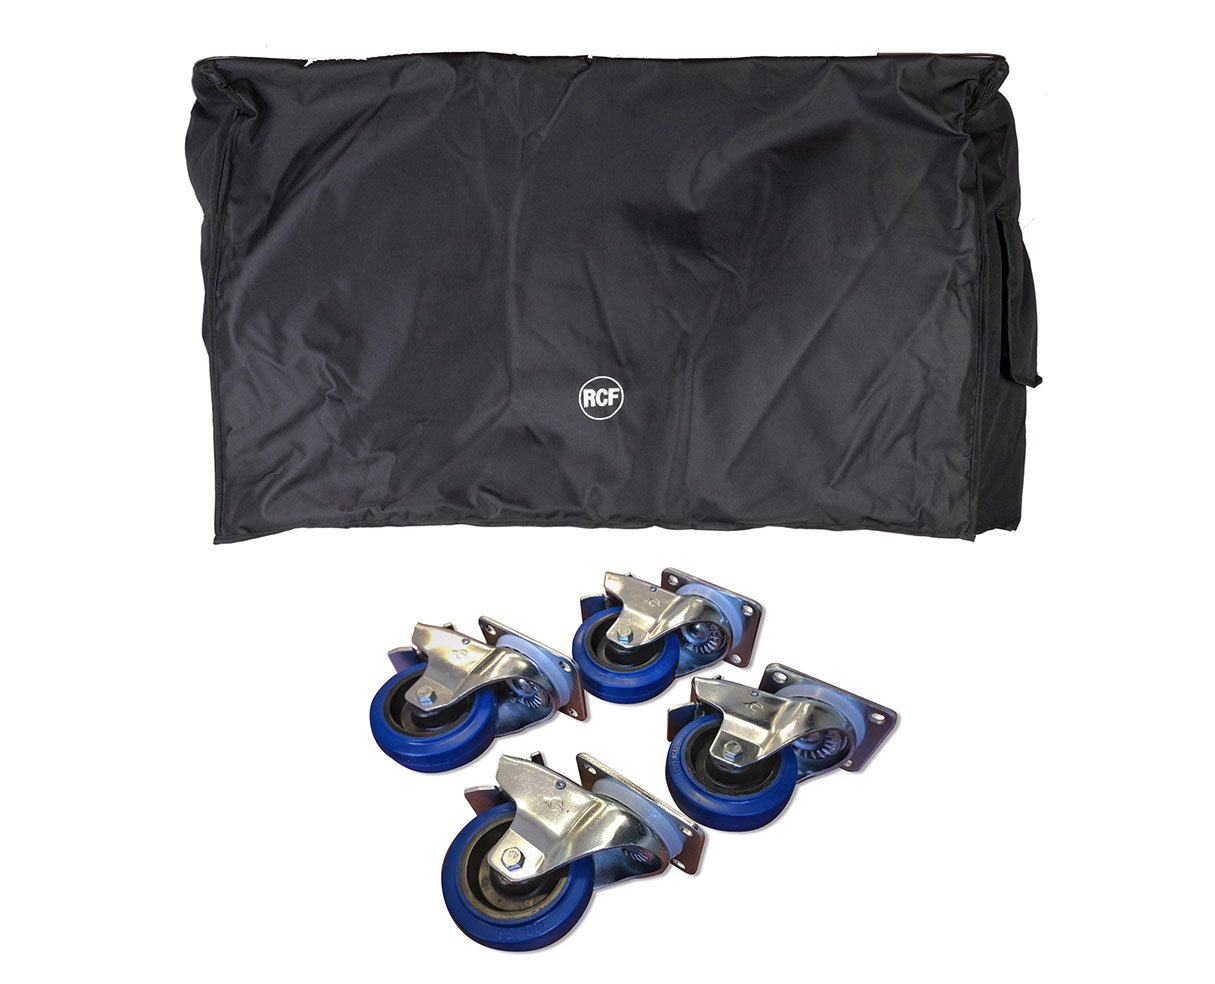 RCF SUB 8006-AS Cover + Casters 4-Pack